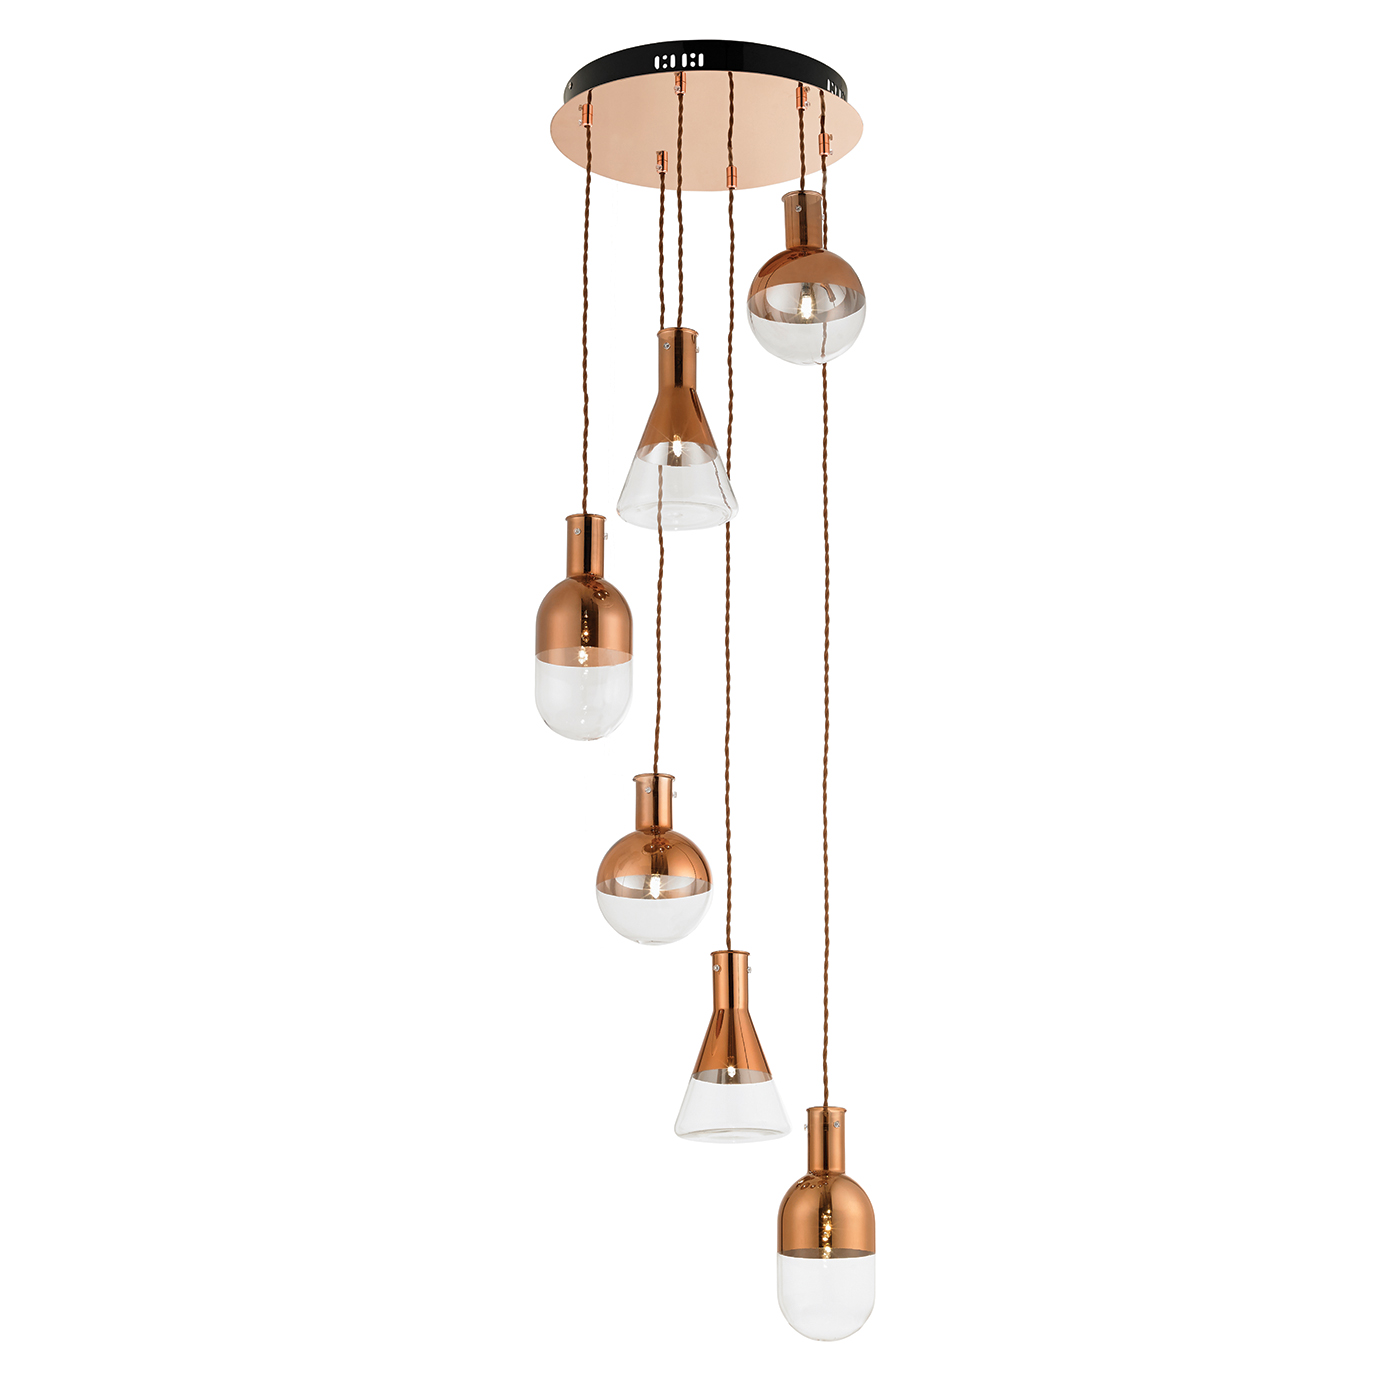 Endon Giamatti pendant 6x 20W Copper plate & clear glass with copper detail